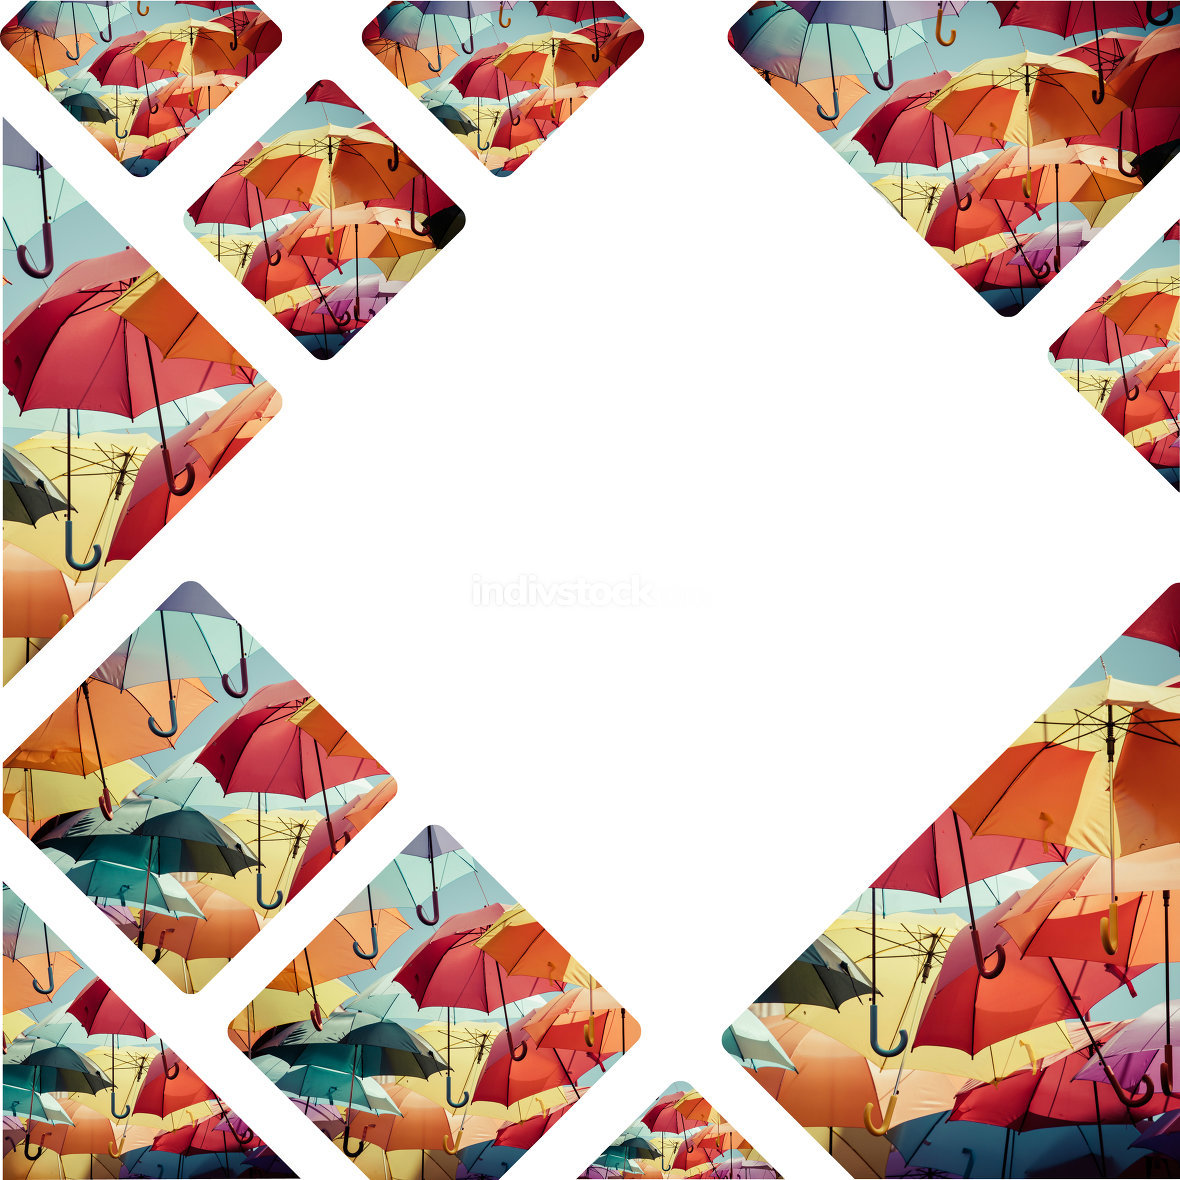 Collage of colorful umbrella street decoration.